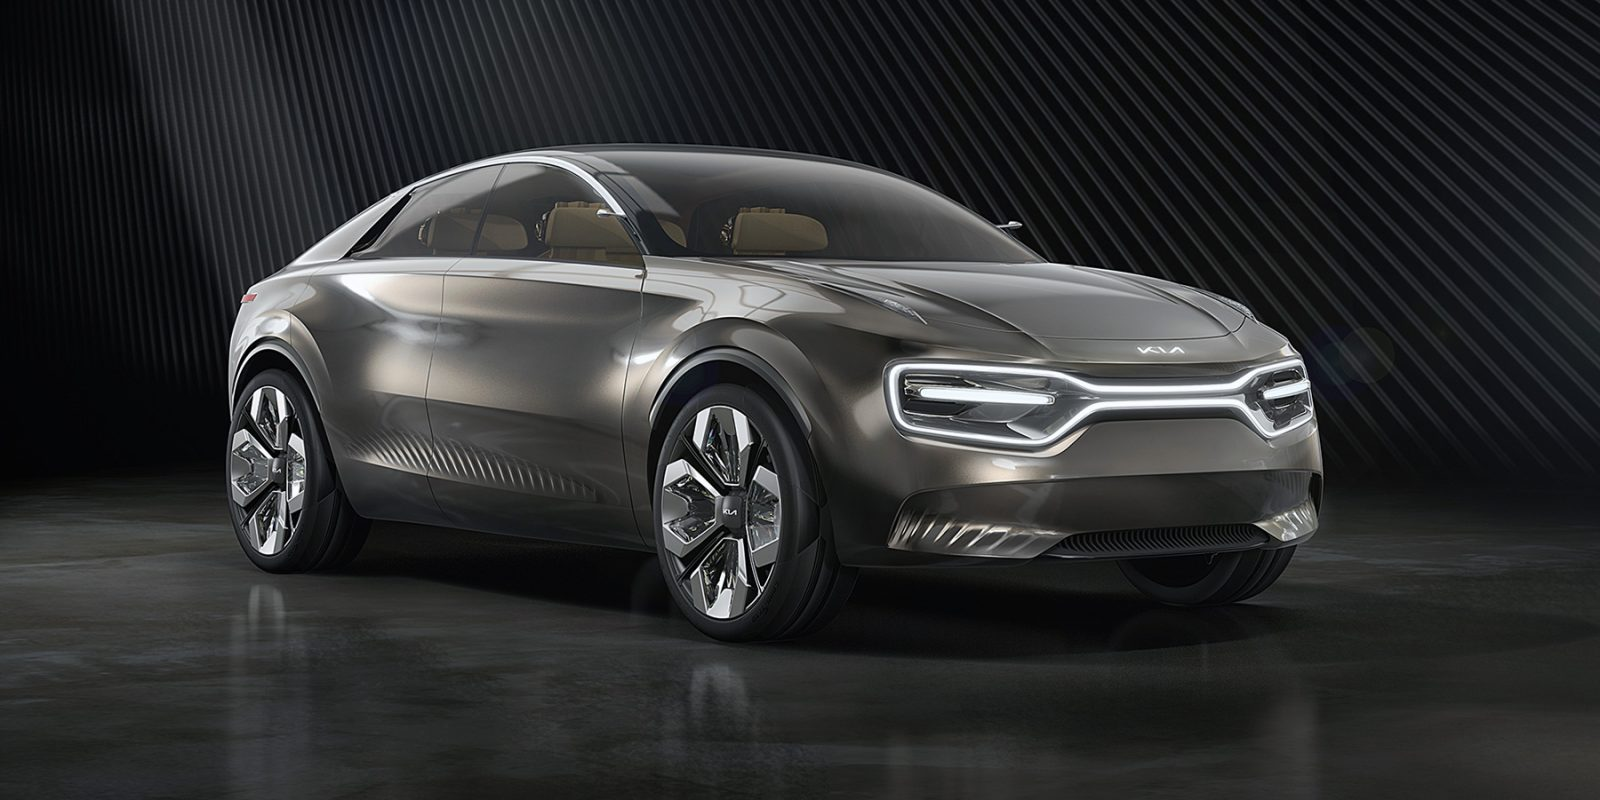 Kia will produce its sporty Imagine EV in 2021, but an $11,000 compact EV for Europe is elusive